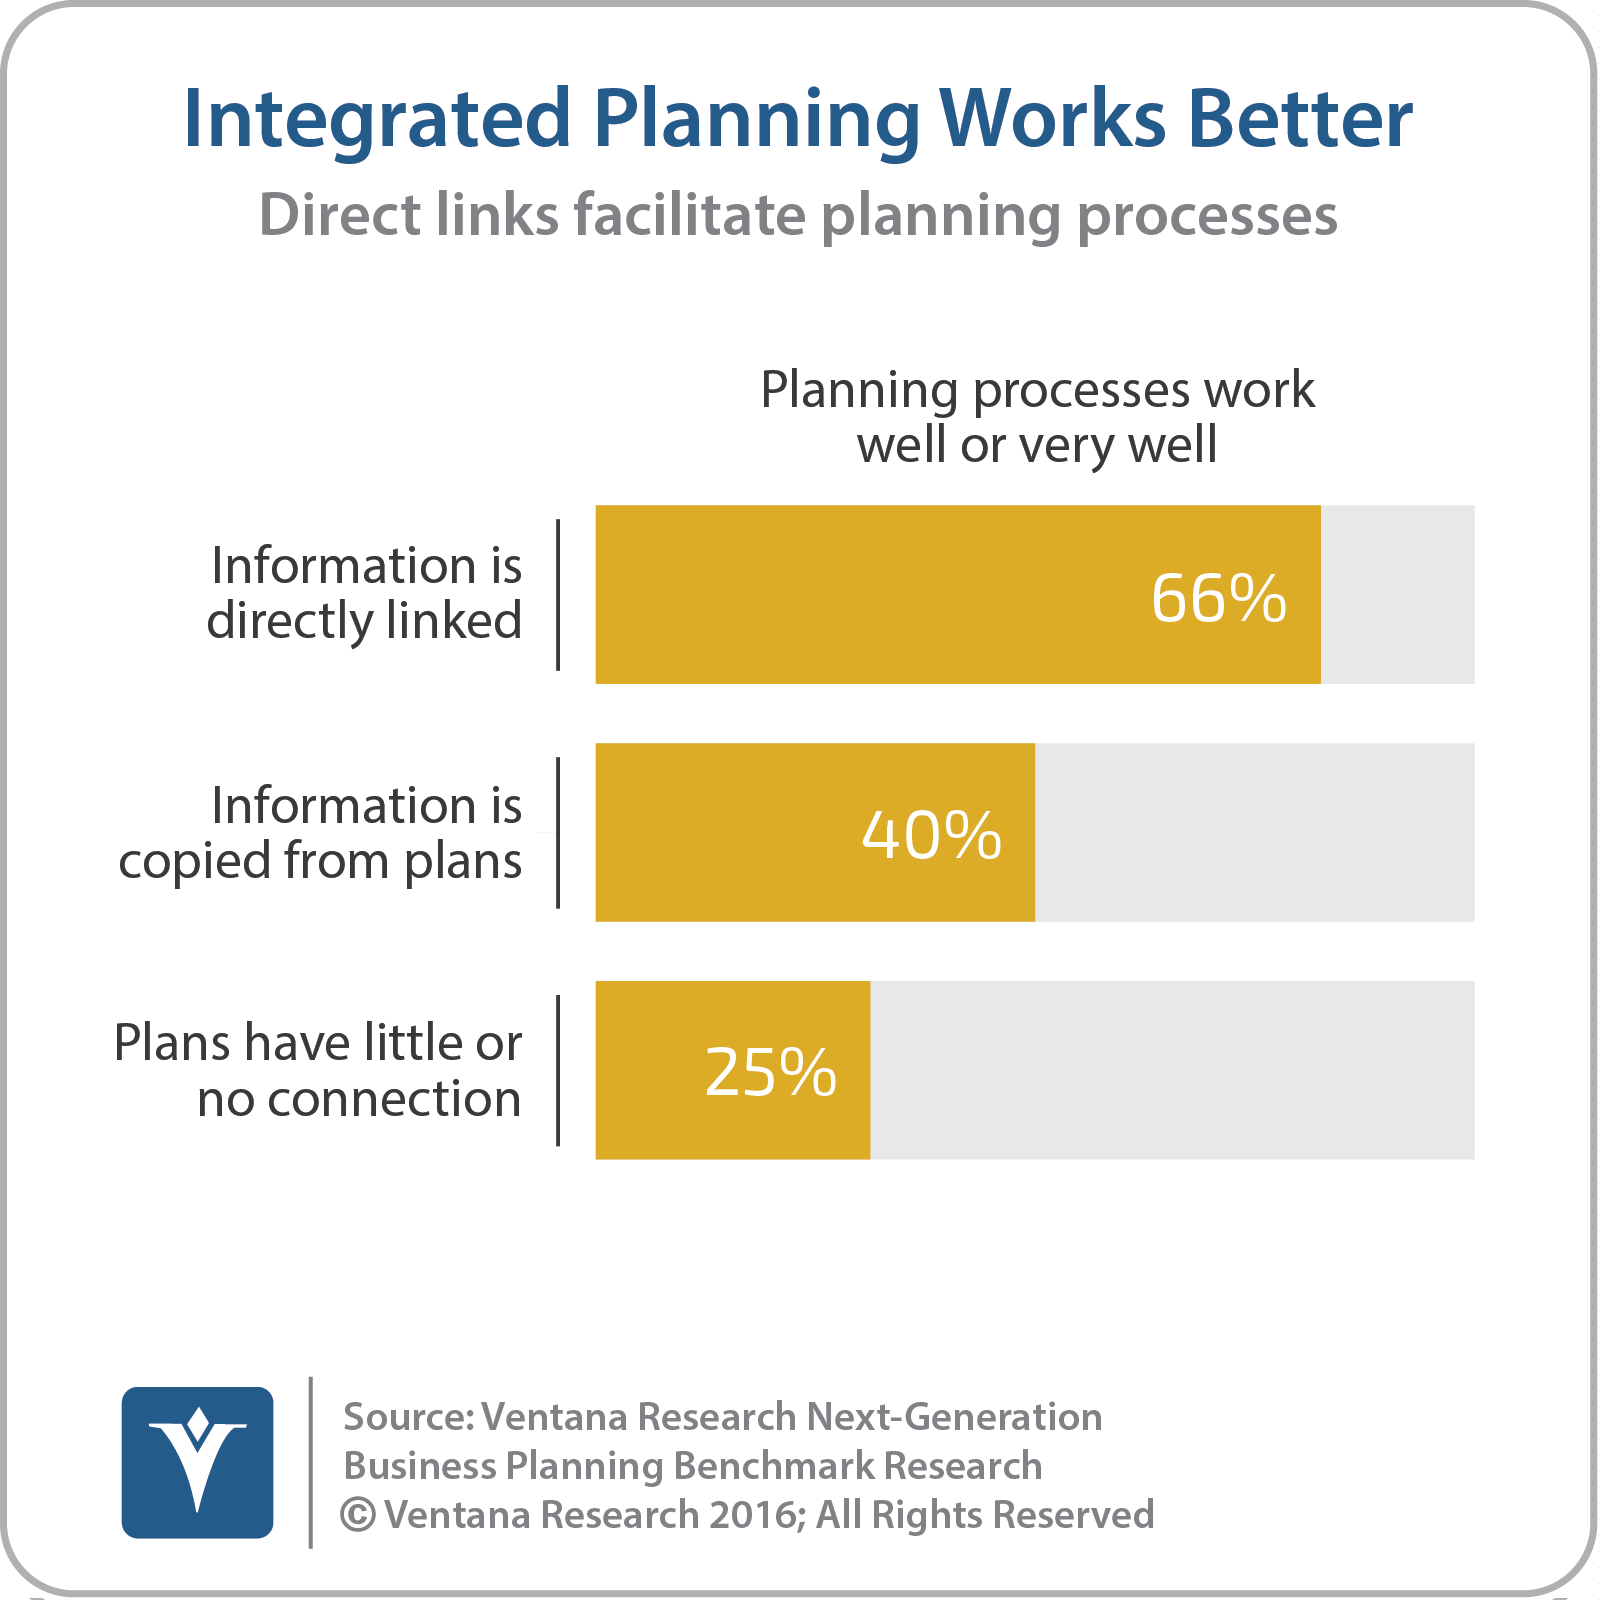 vr_NGBP_02_integrated_planning_works_better_update-4.png